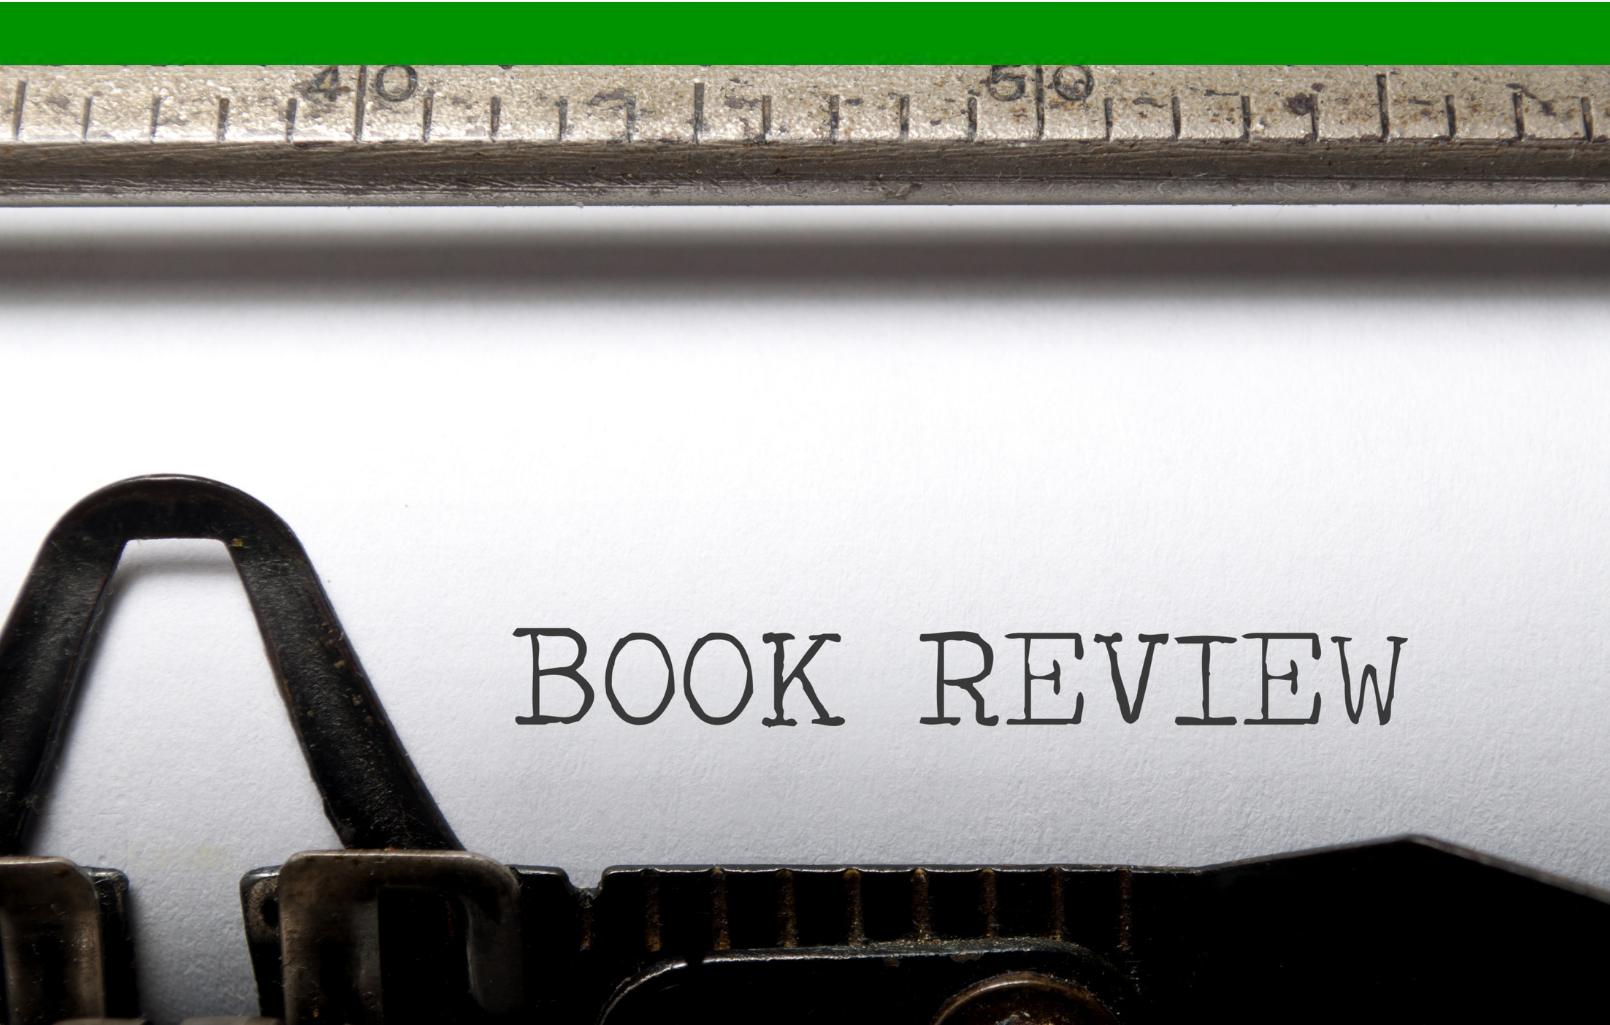 Book Reviews thumbnail image.